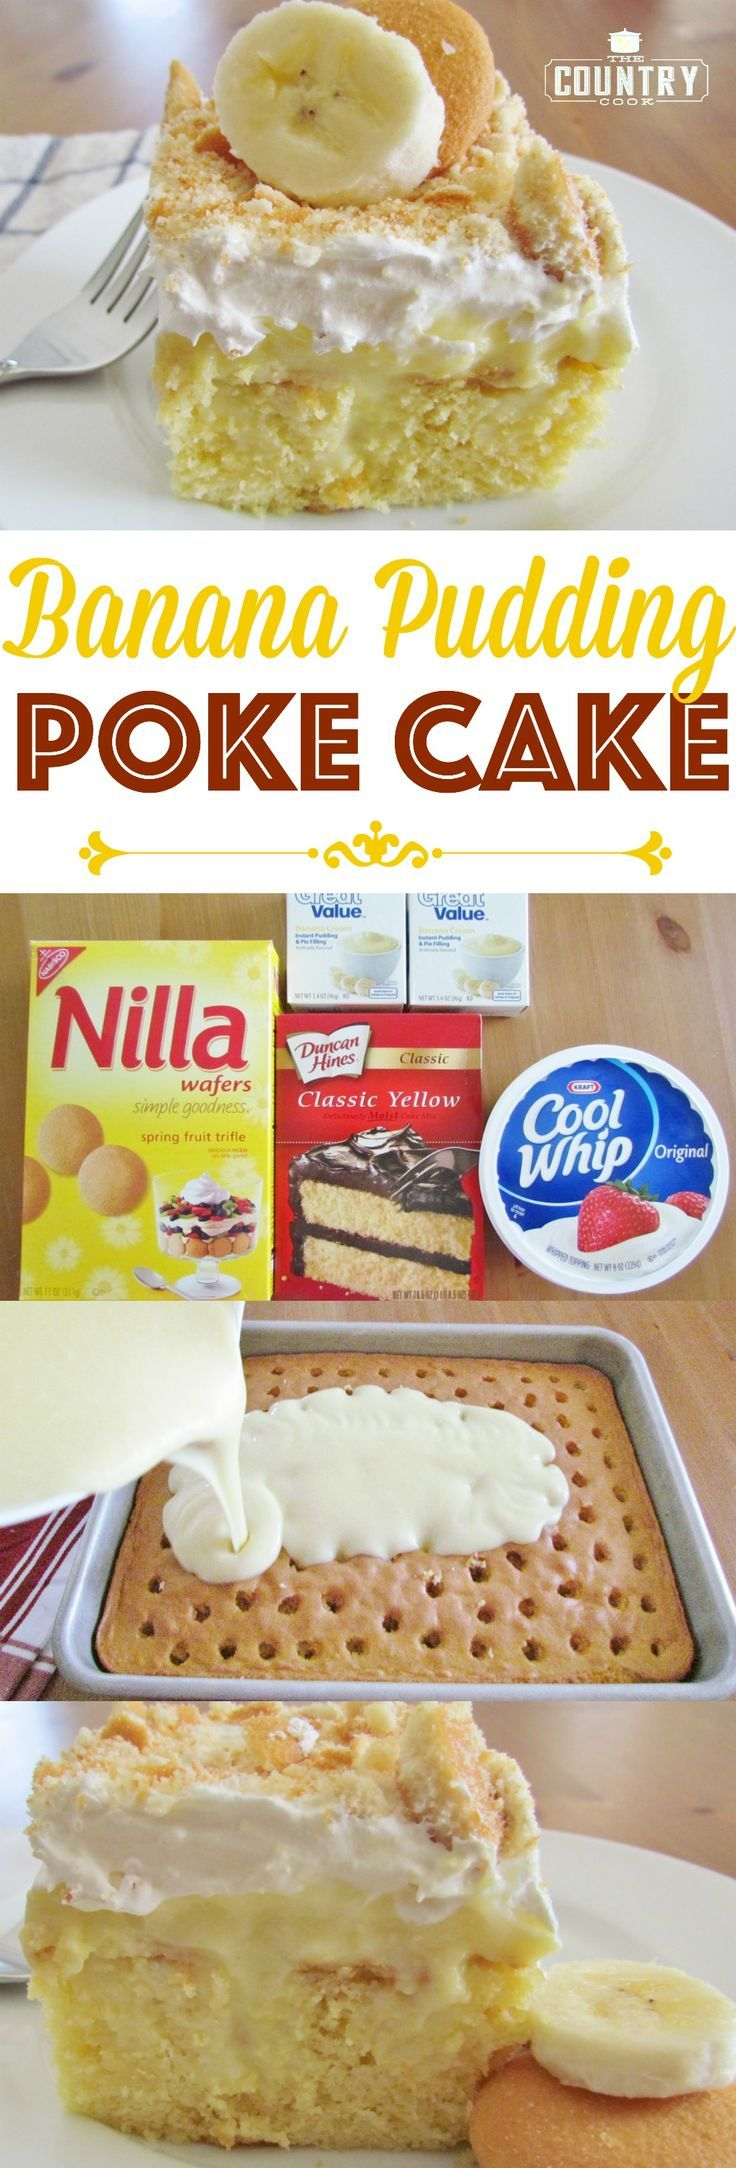 Banana Pudding Poke Cake recipe from The Country Cook. The original recipe started here! It's our favorite!